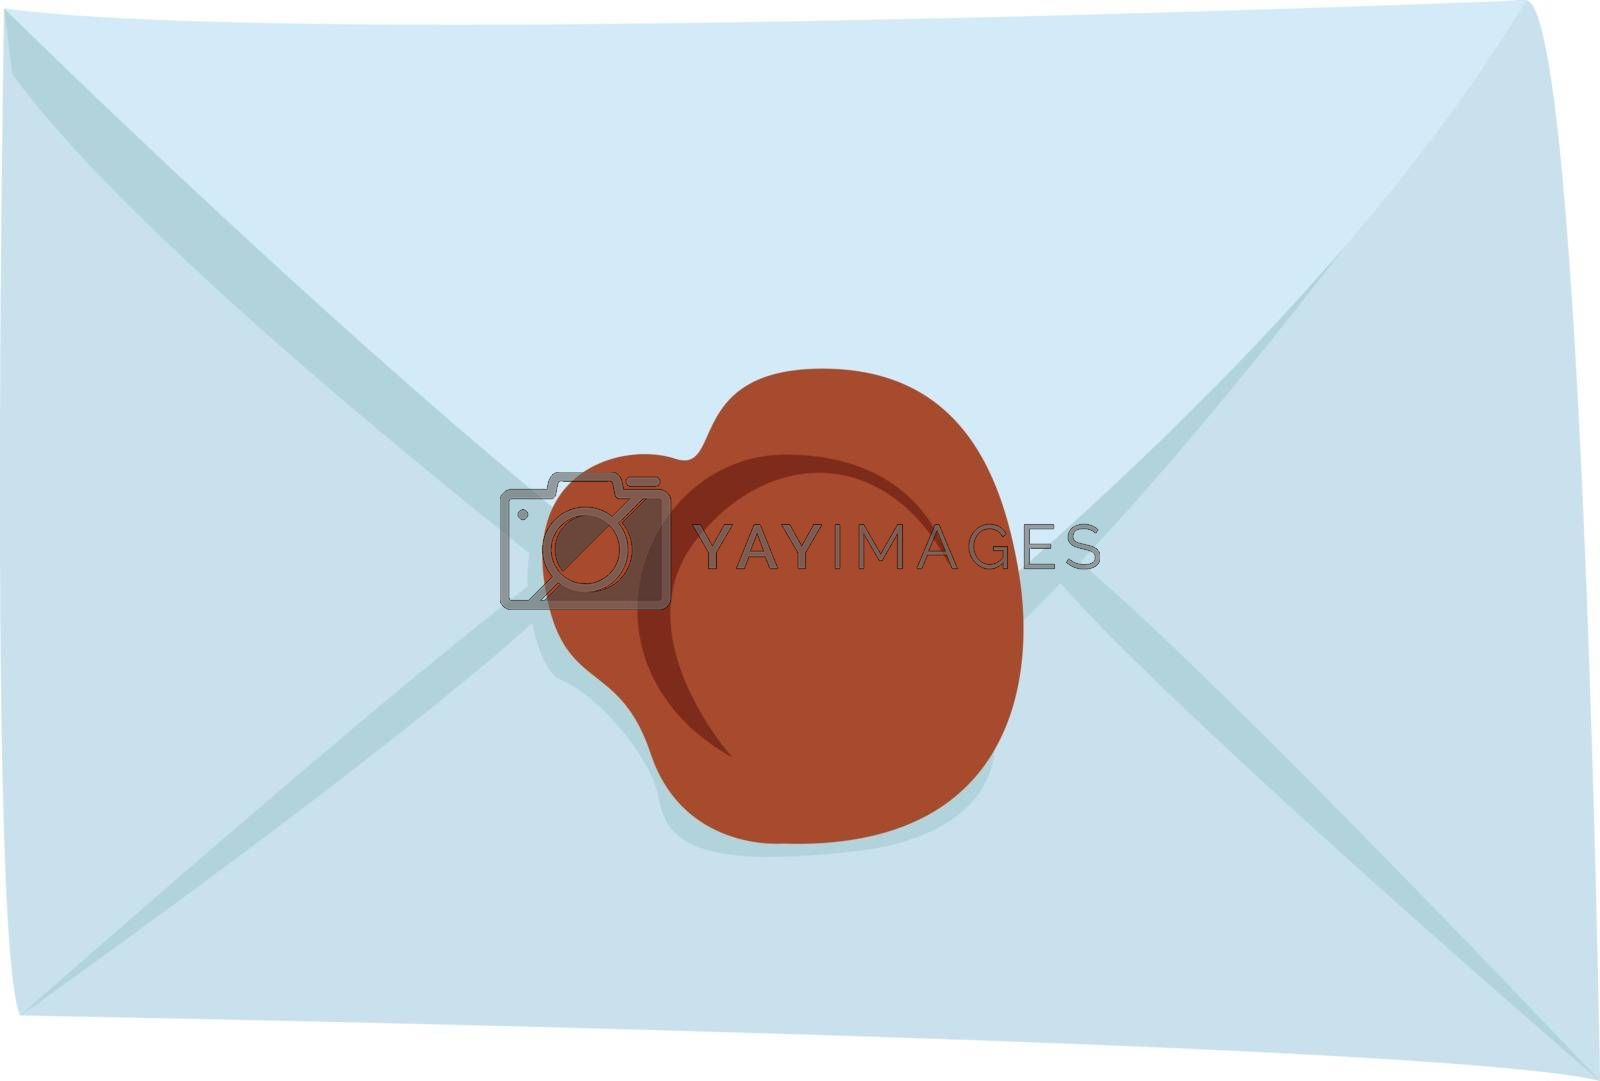 Sealed letter, illustration, vector on white background.